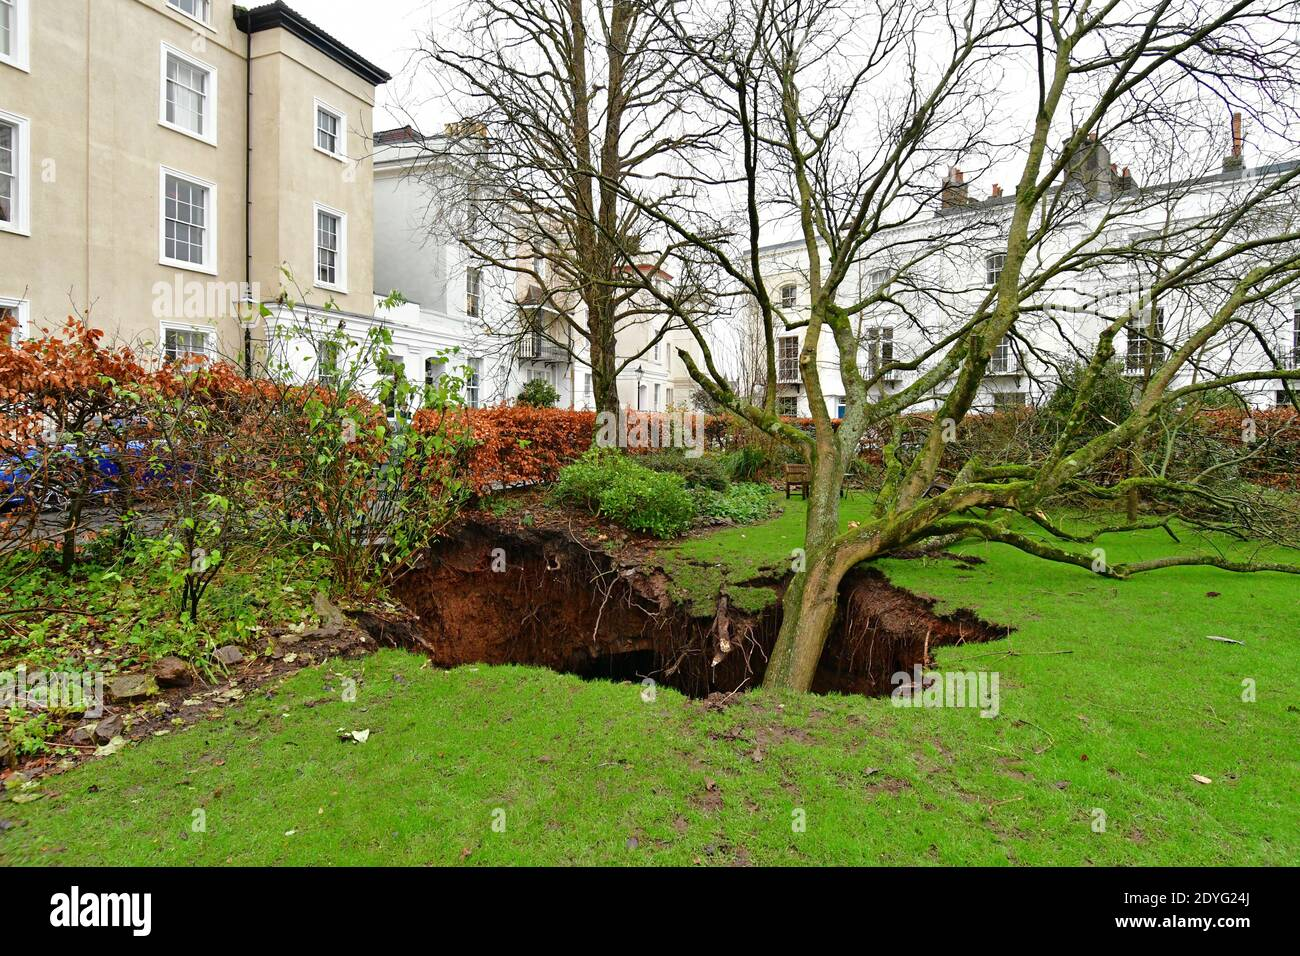 Bristol, UK. 26th Dec, 2020. UK Bristol. Canynge Square in Clifton Village A Large Sinkhole with tree in it opens up in residents private gardens. Picture Credit: Robert Timoney/Alamy Live News Stock Photo